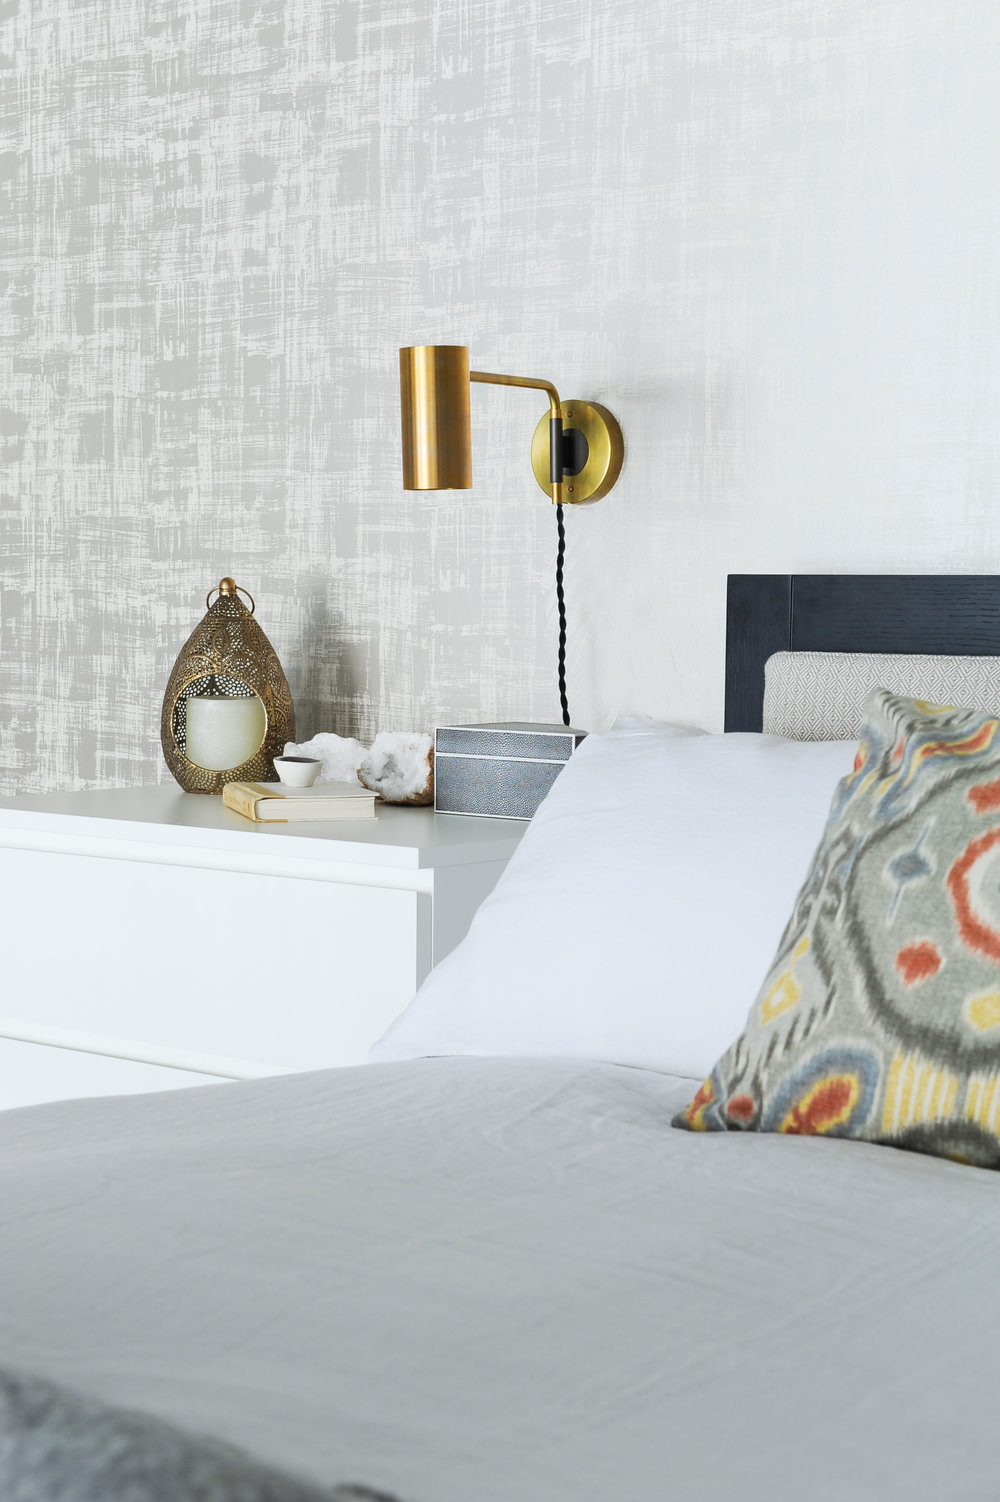 Some interesting decor, such as a candle, a book and quartz rocks sat on a white dresser drawer bedside table with a gold light sconce fixed into the wall, beside a black and tan bed with white bedding.